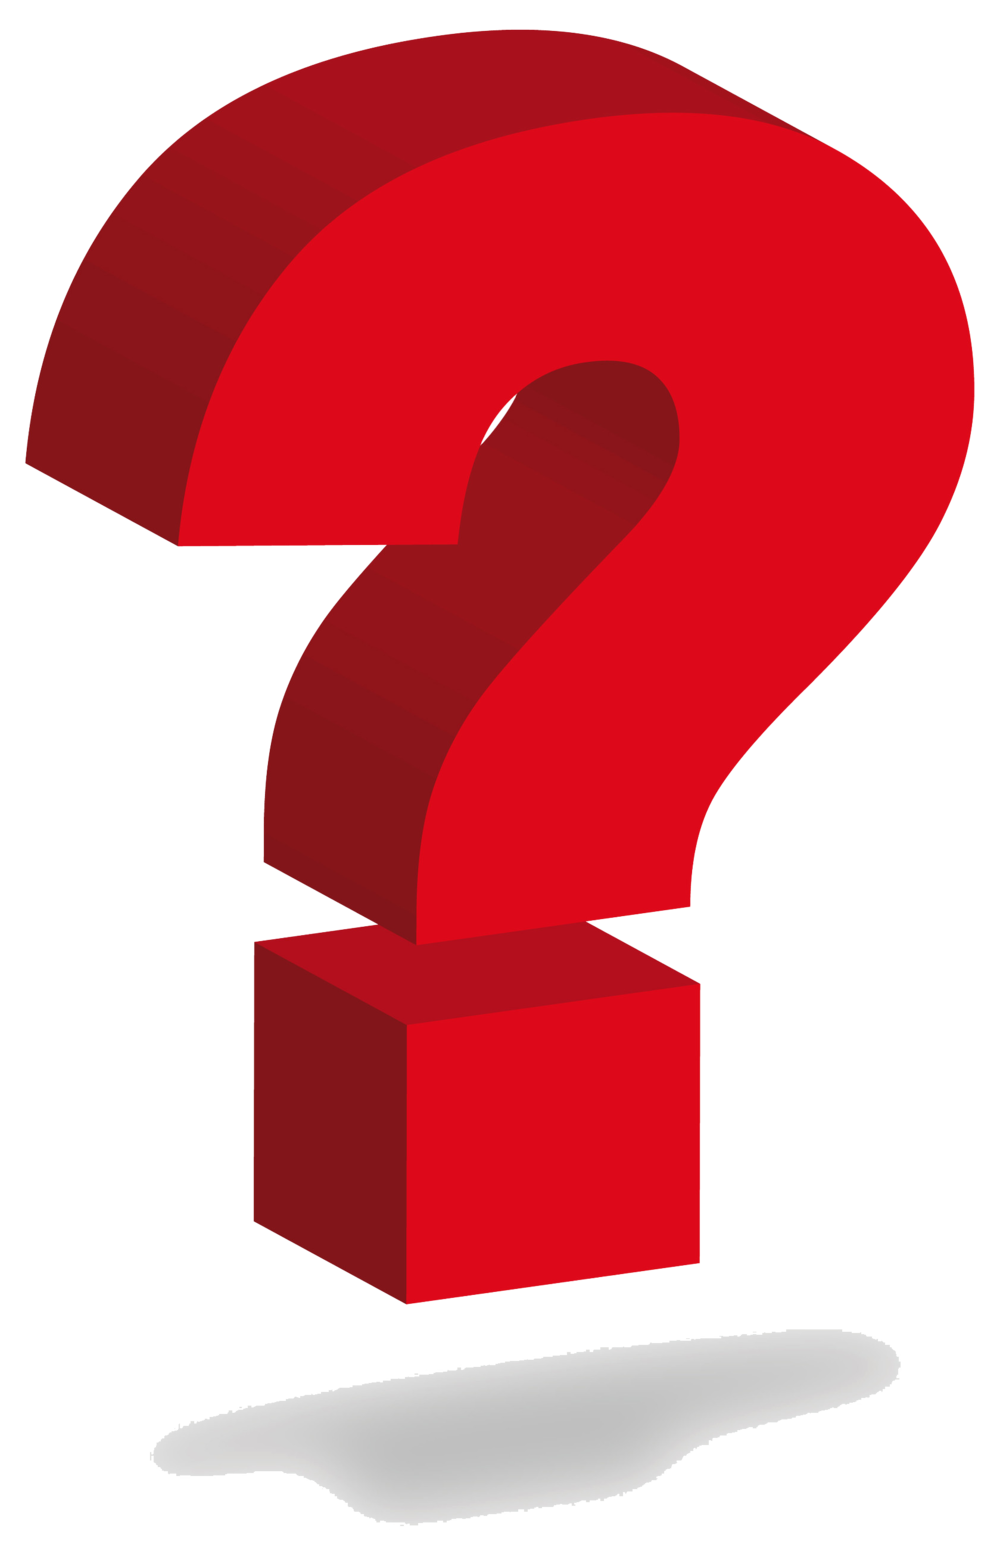 Question mark clipart png. Images free download